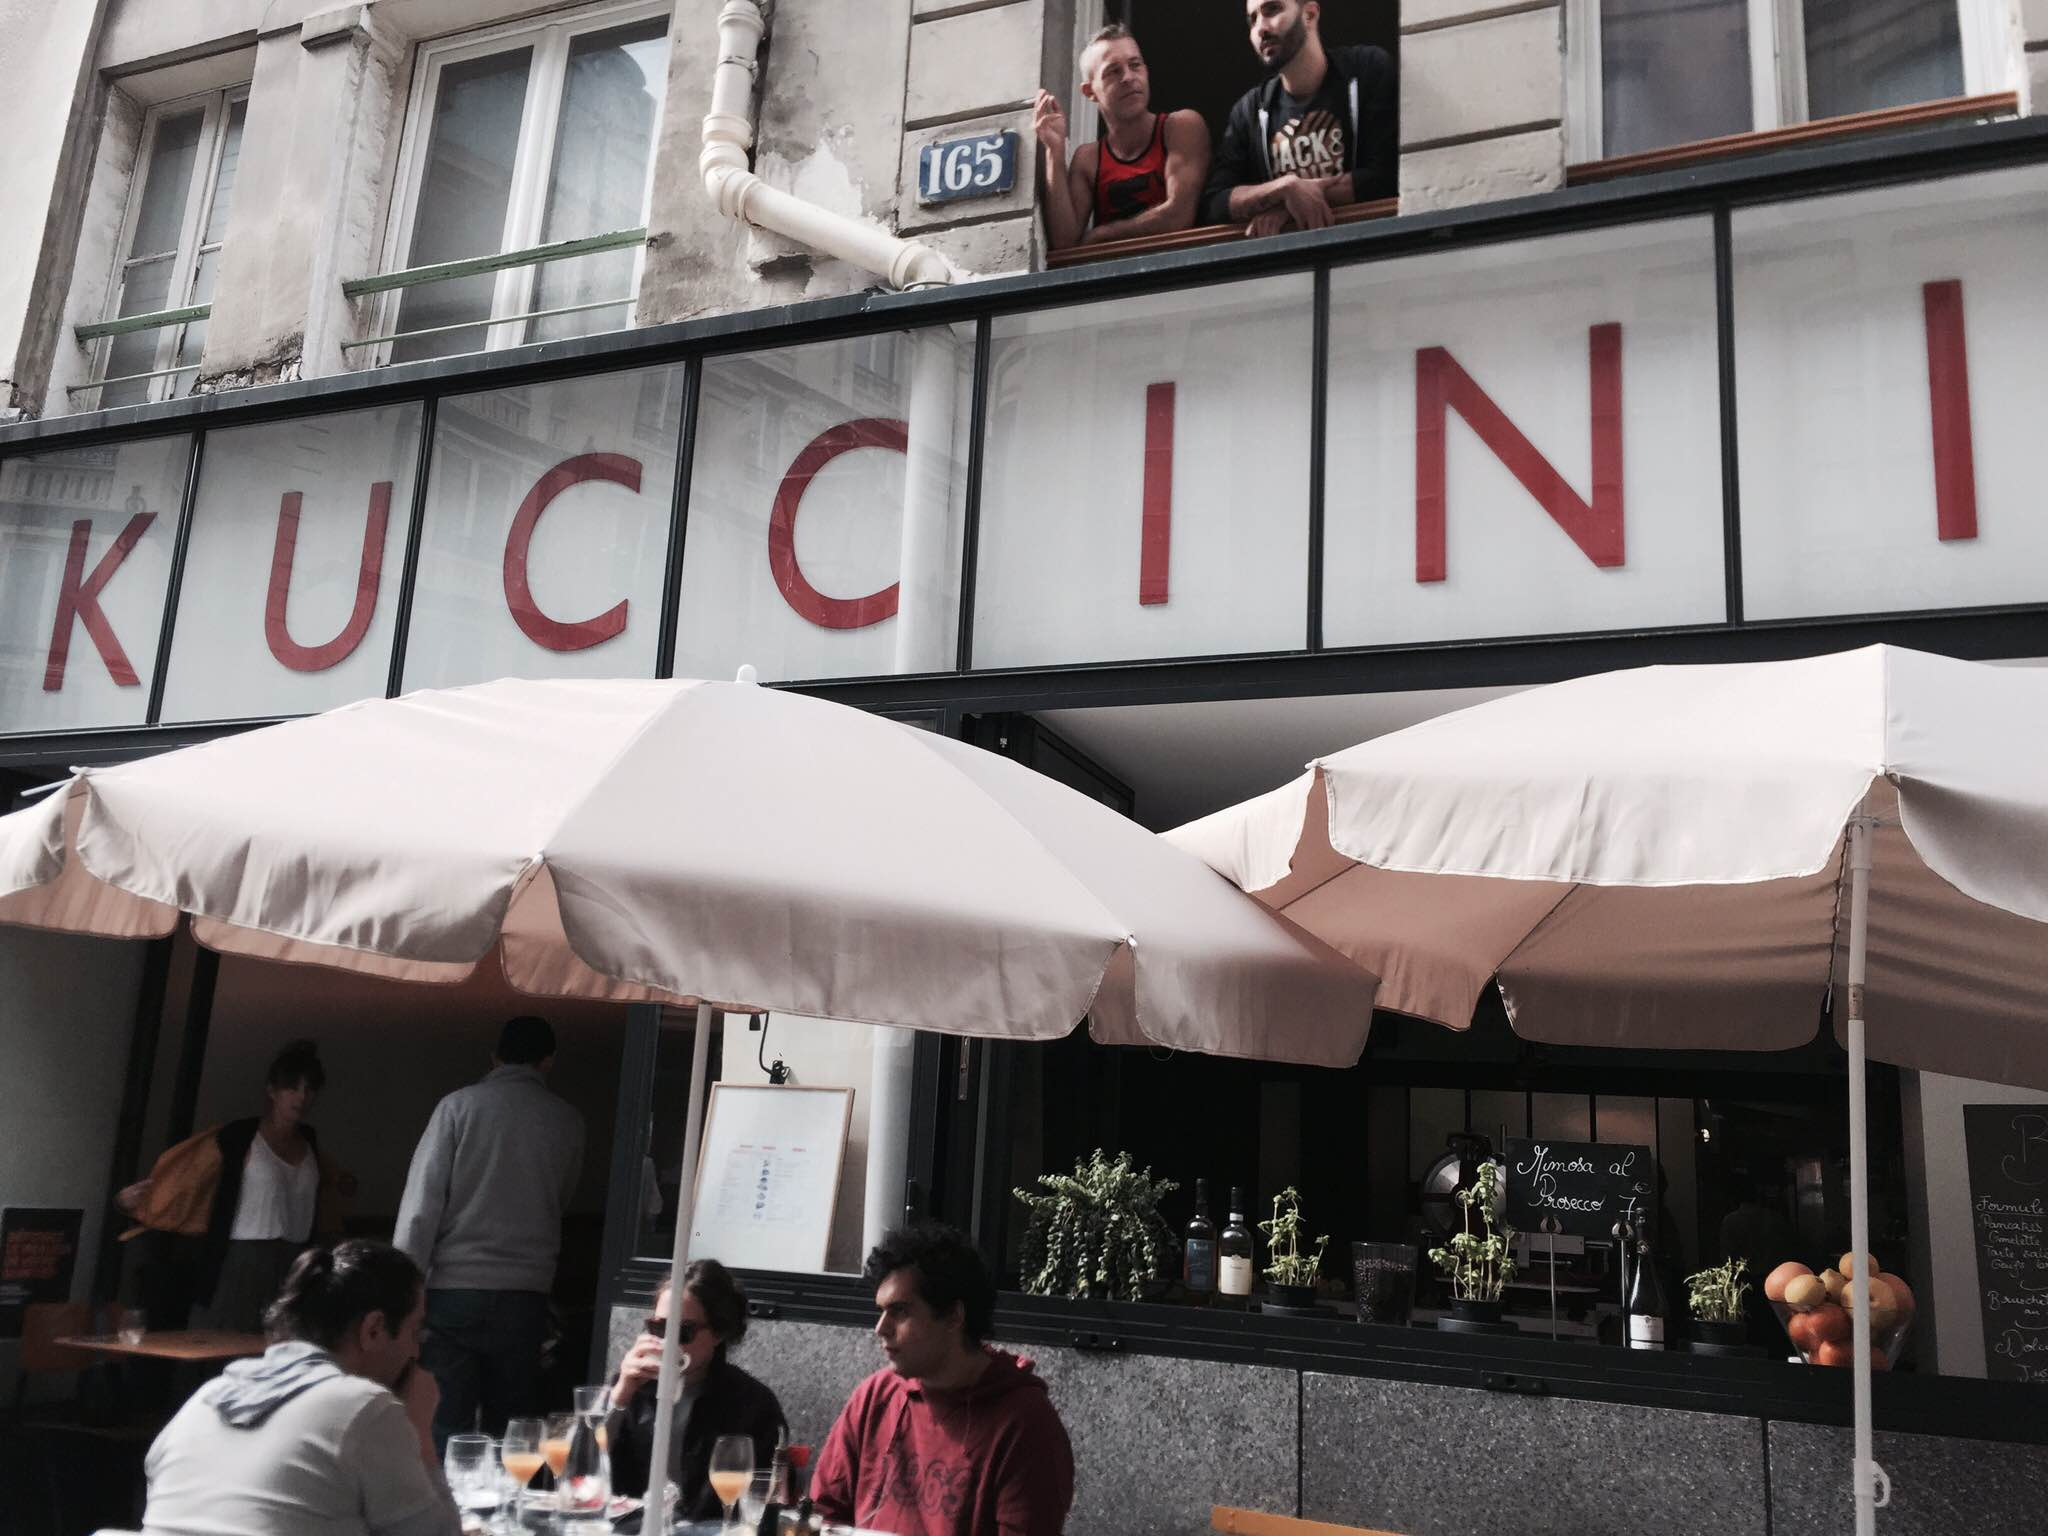 kuccini-restaurant-paris